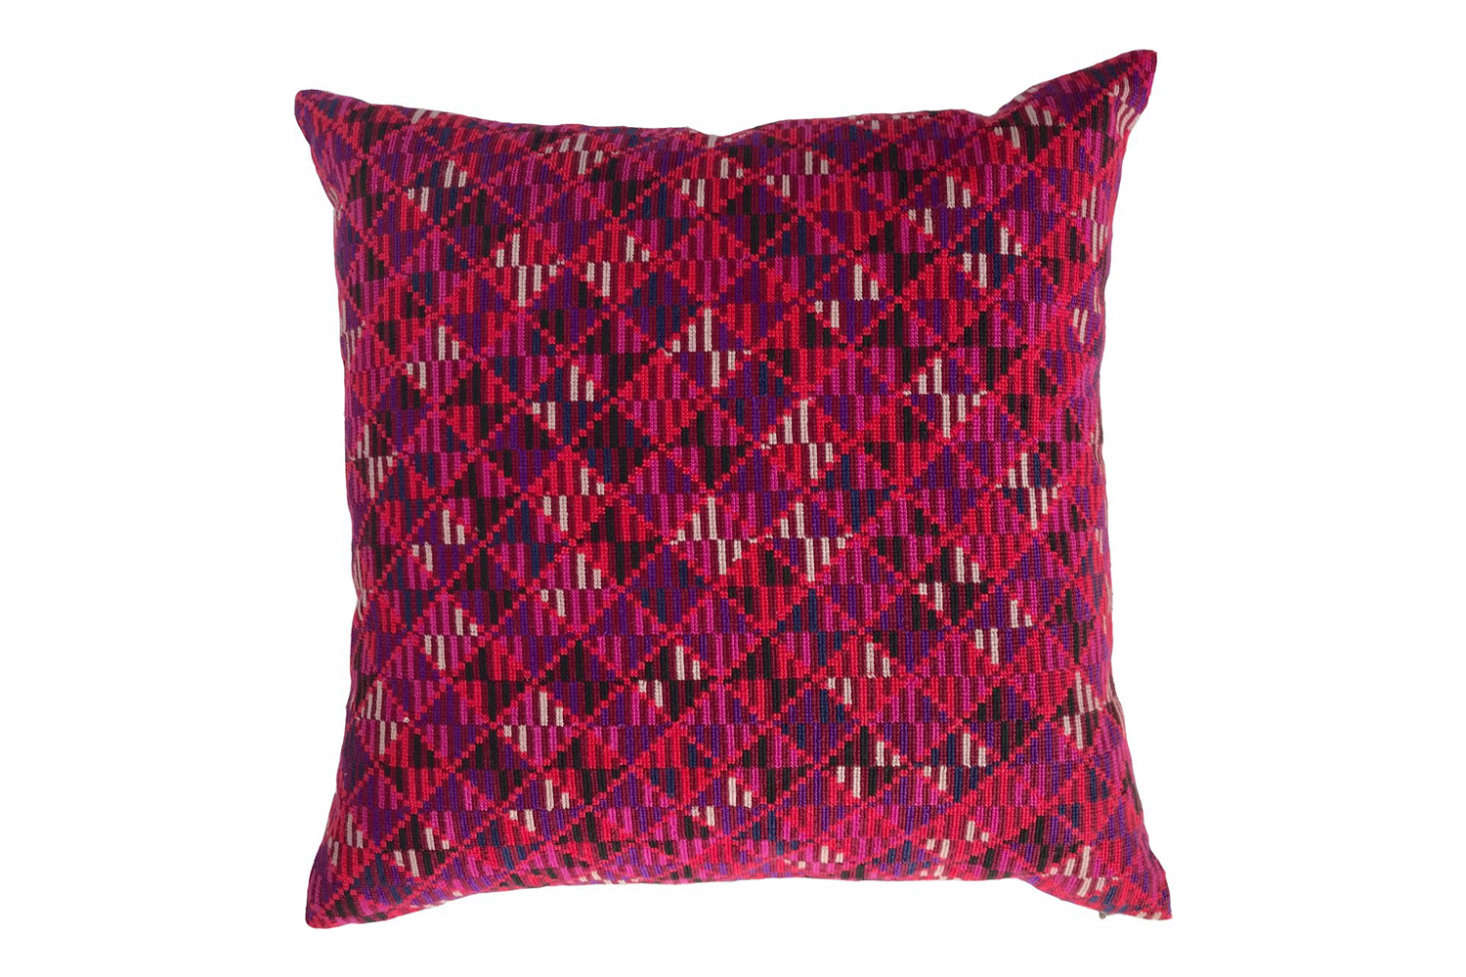 Each pillow is filled with down feathers; the Holy Mount pillow is $380.